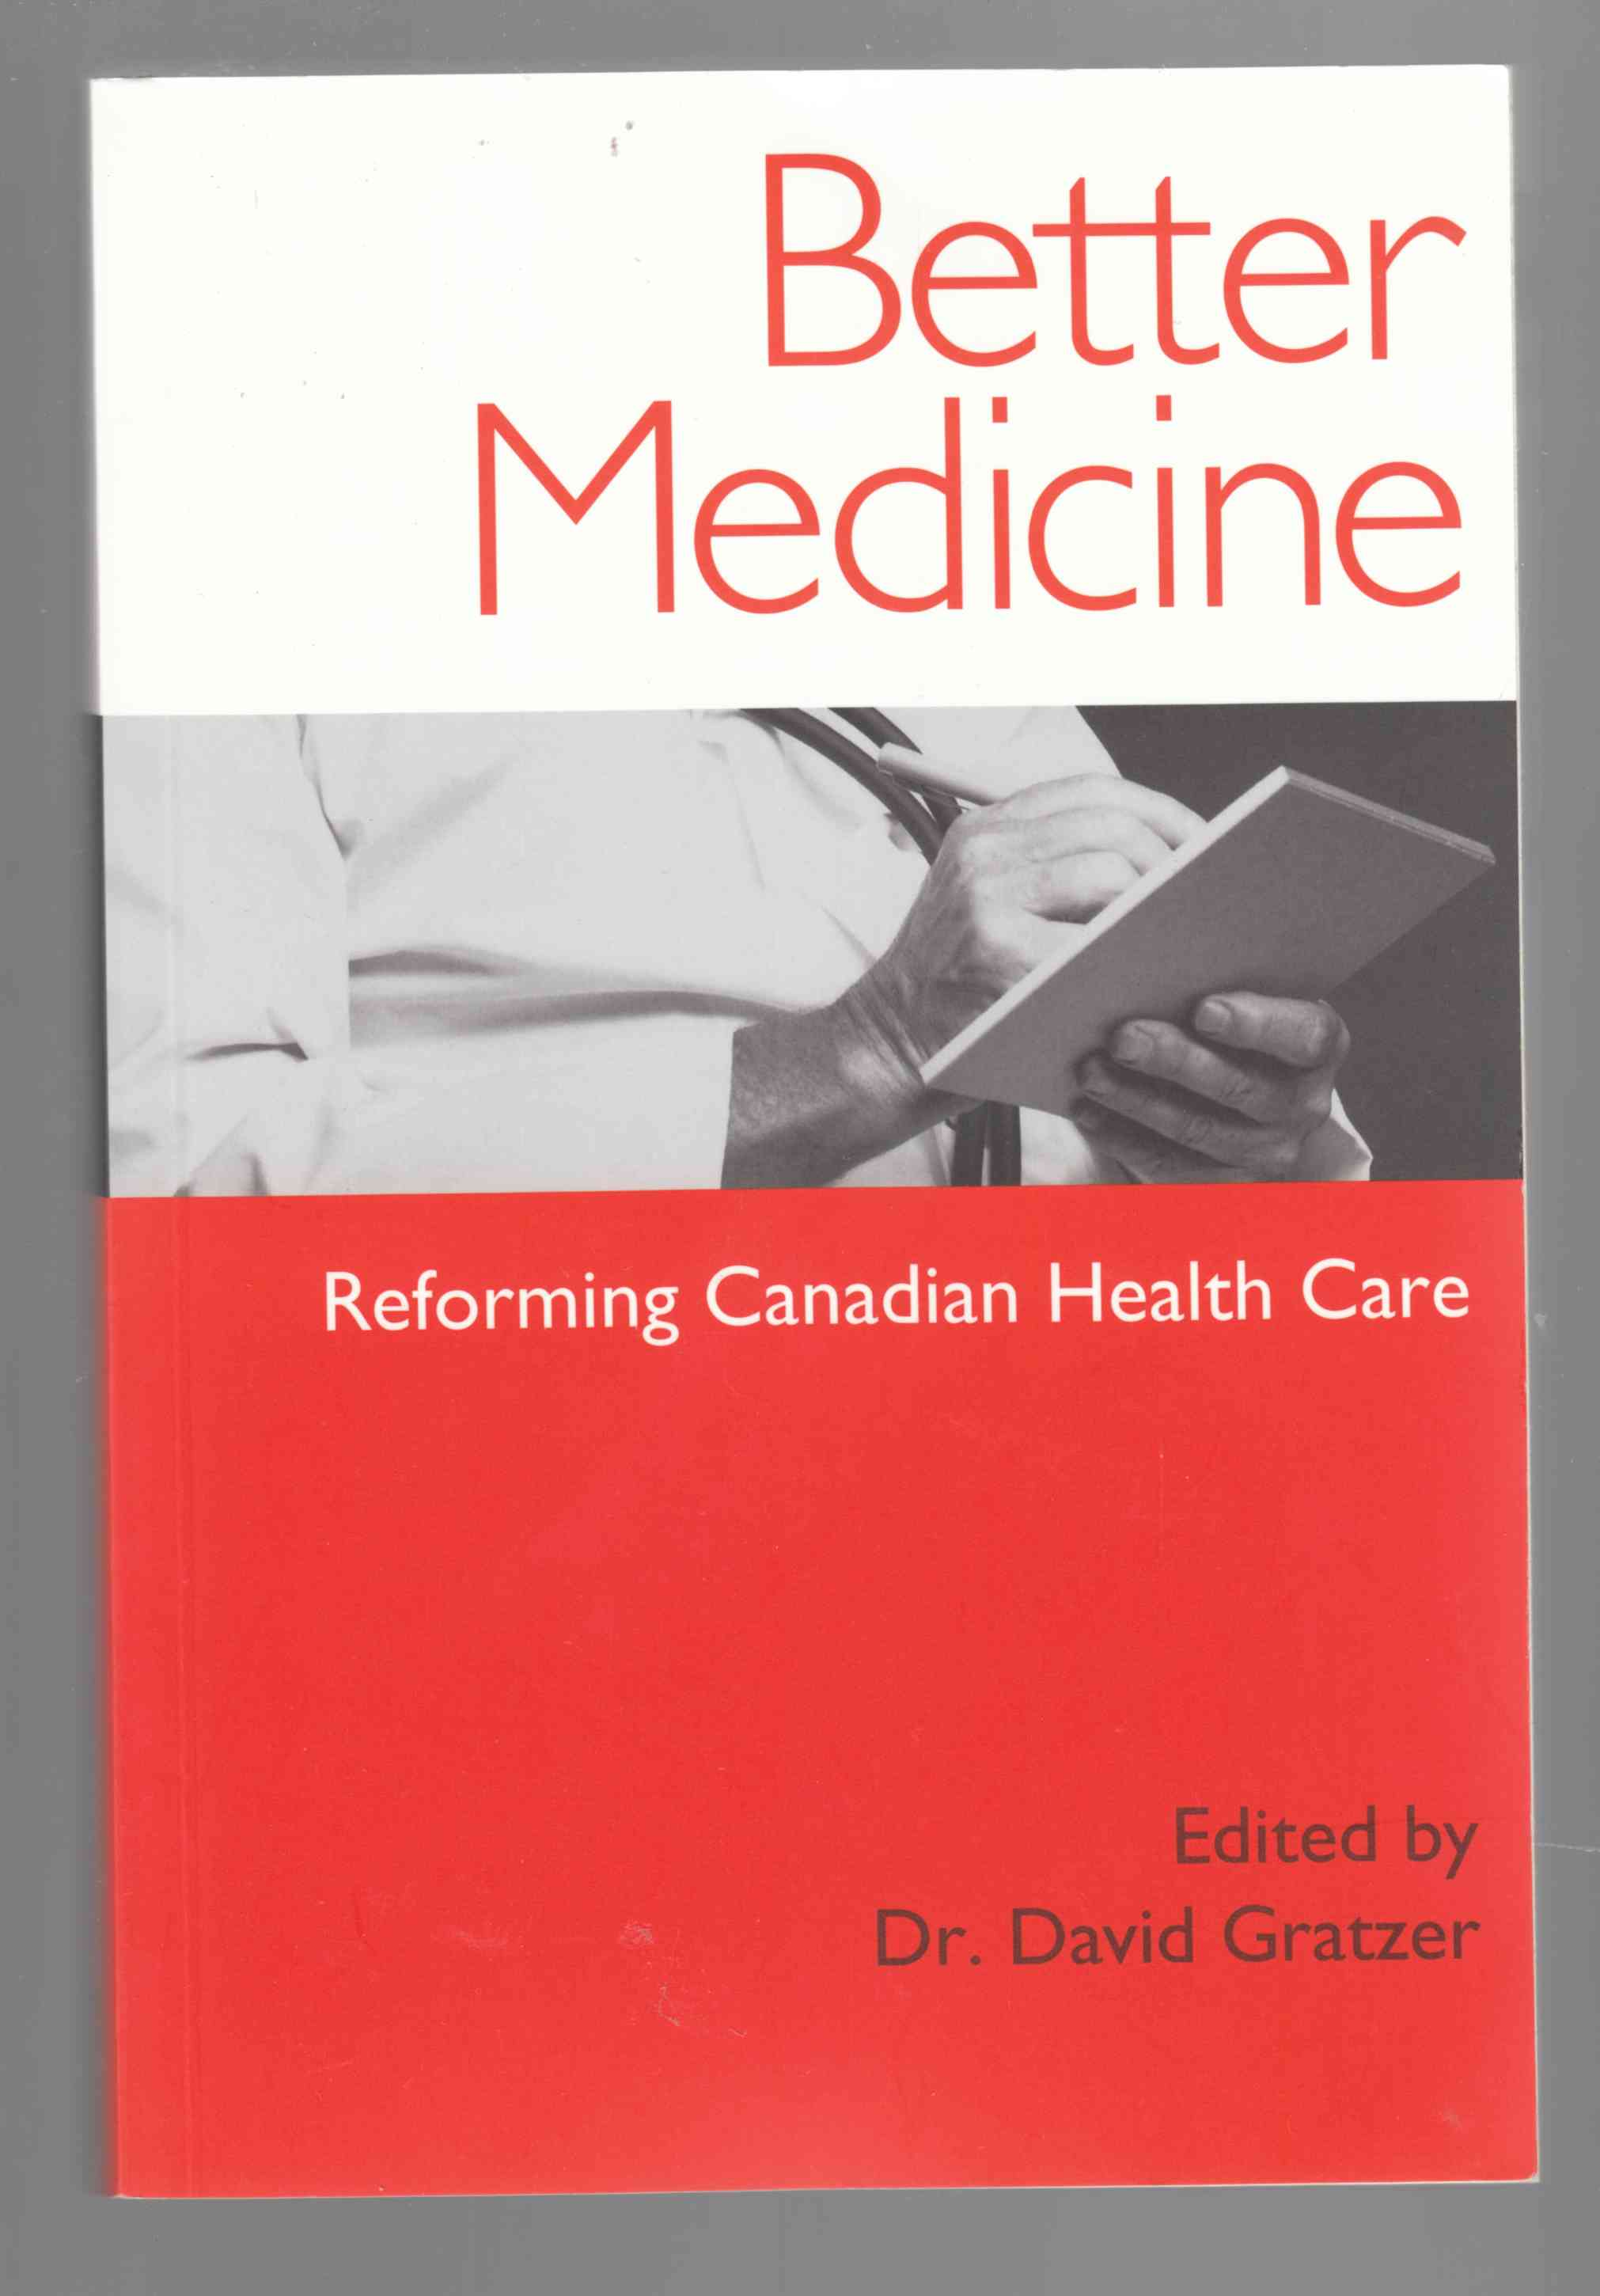 Image for Better Medicine Reforming Canadian Health Care